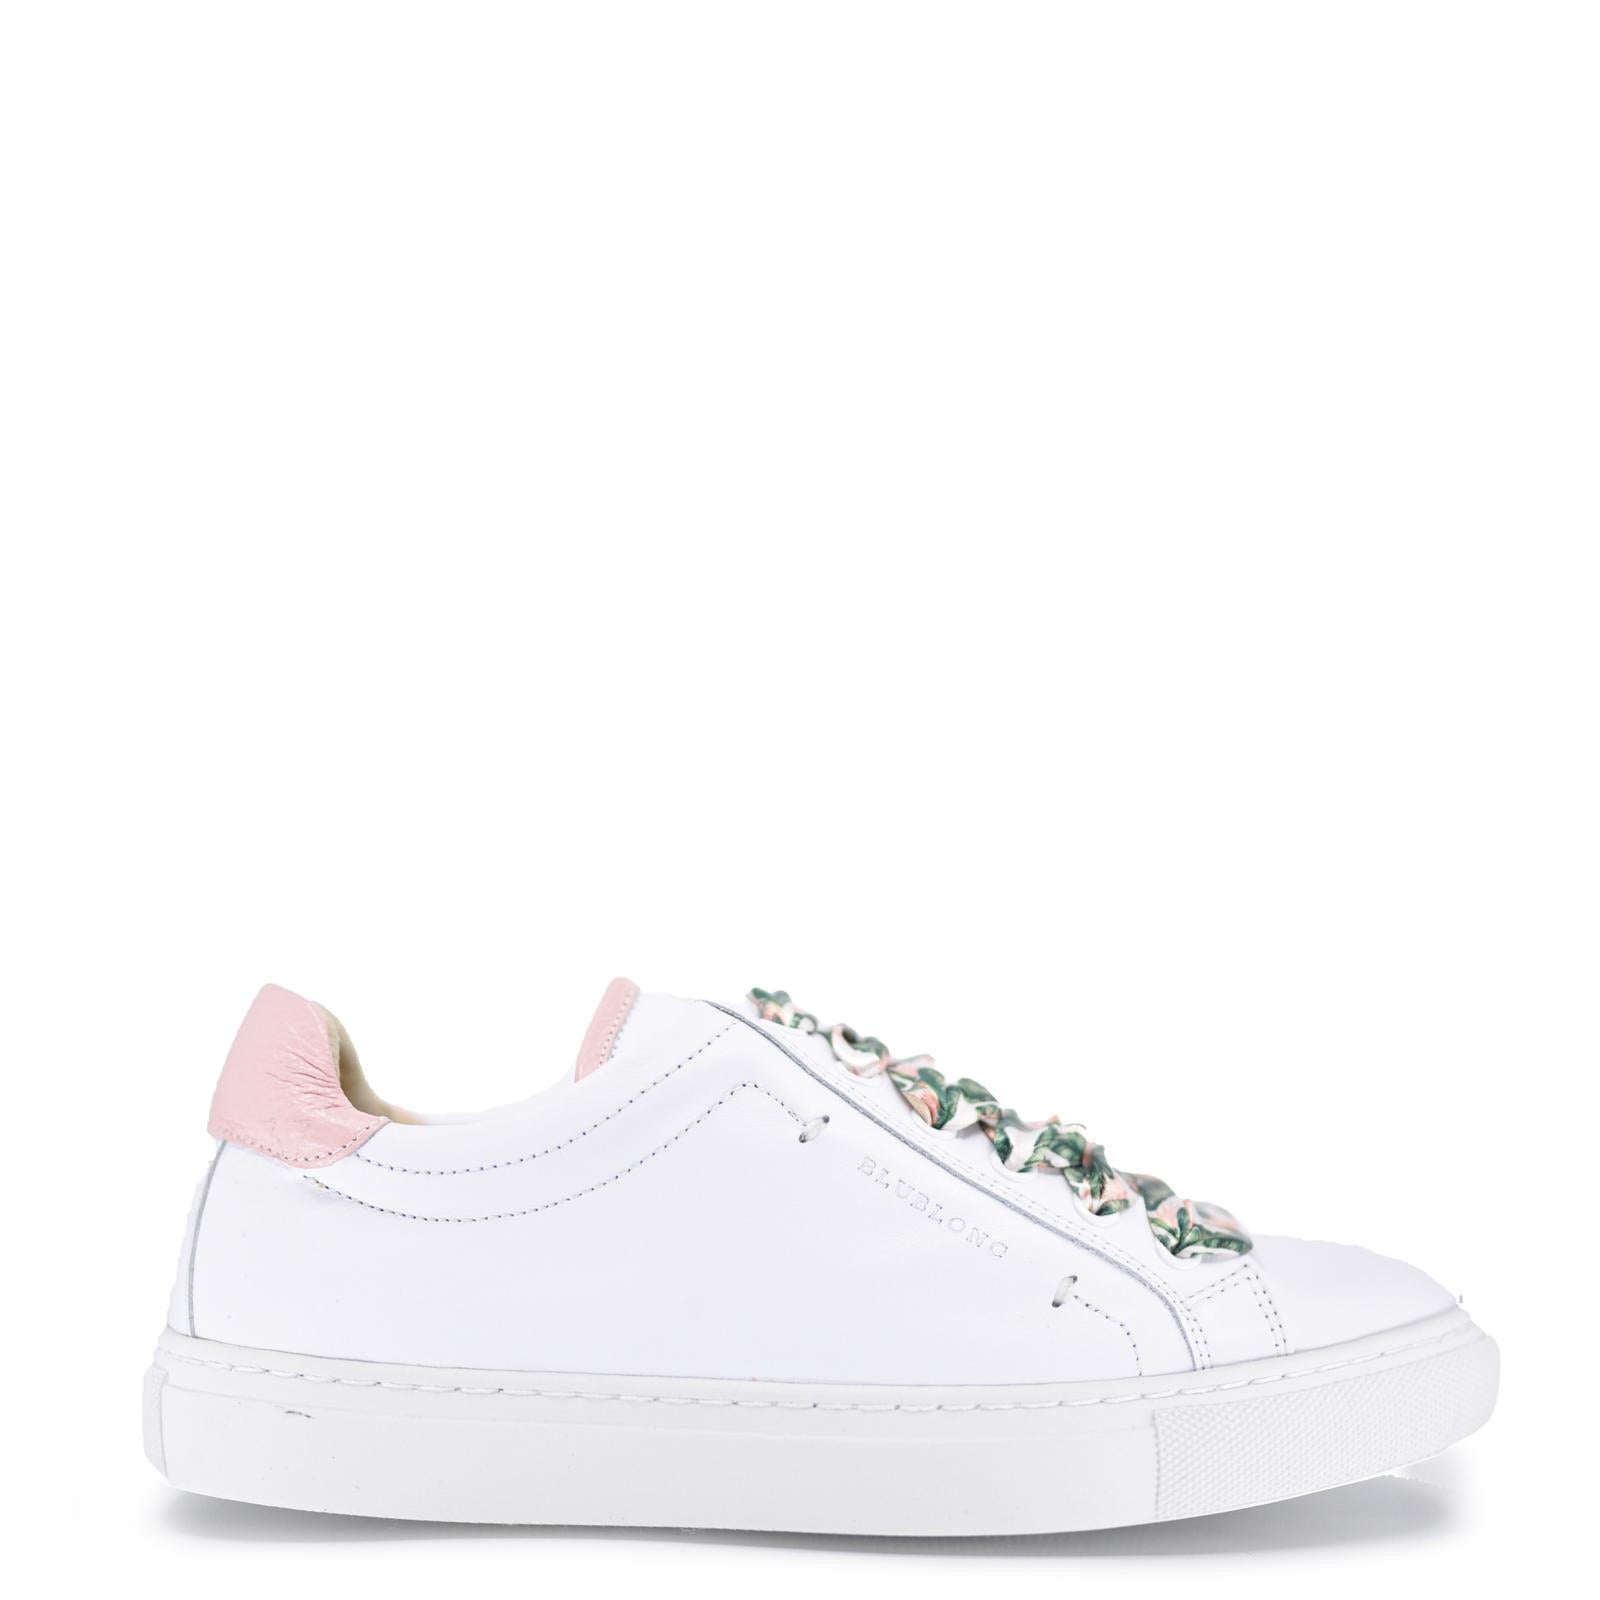 Blublonc White Floral Lace Sneaker-Tassel Children Shoes